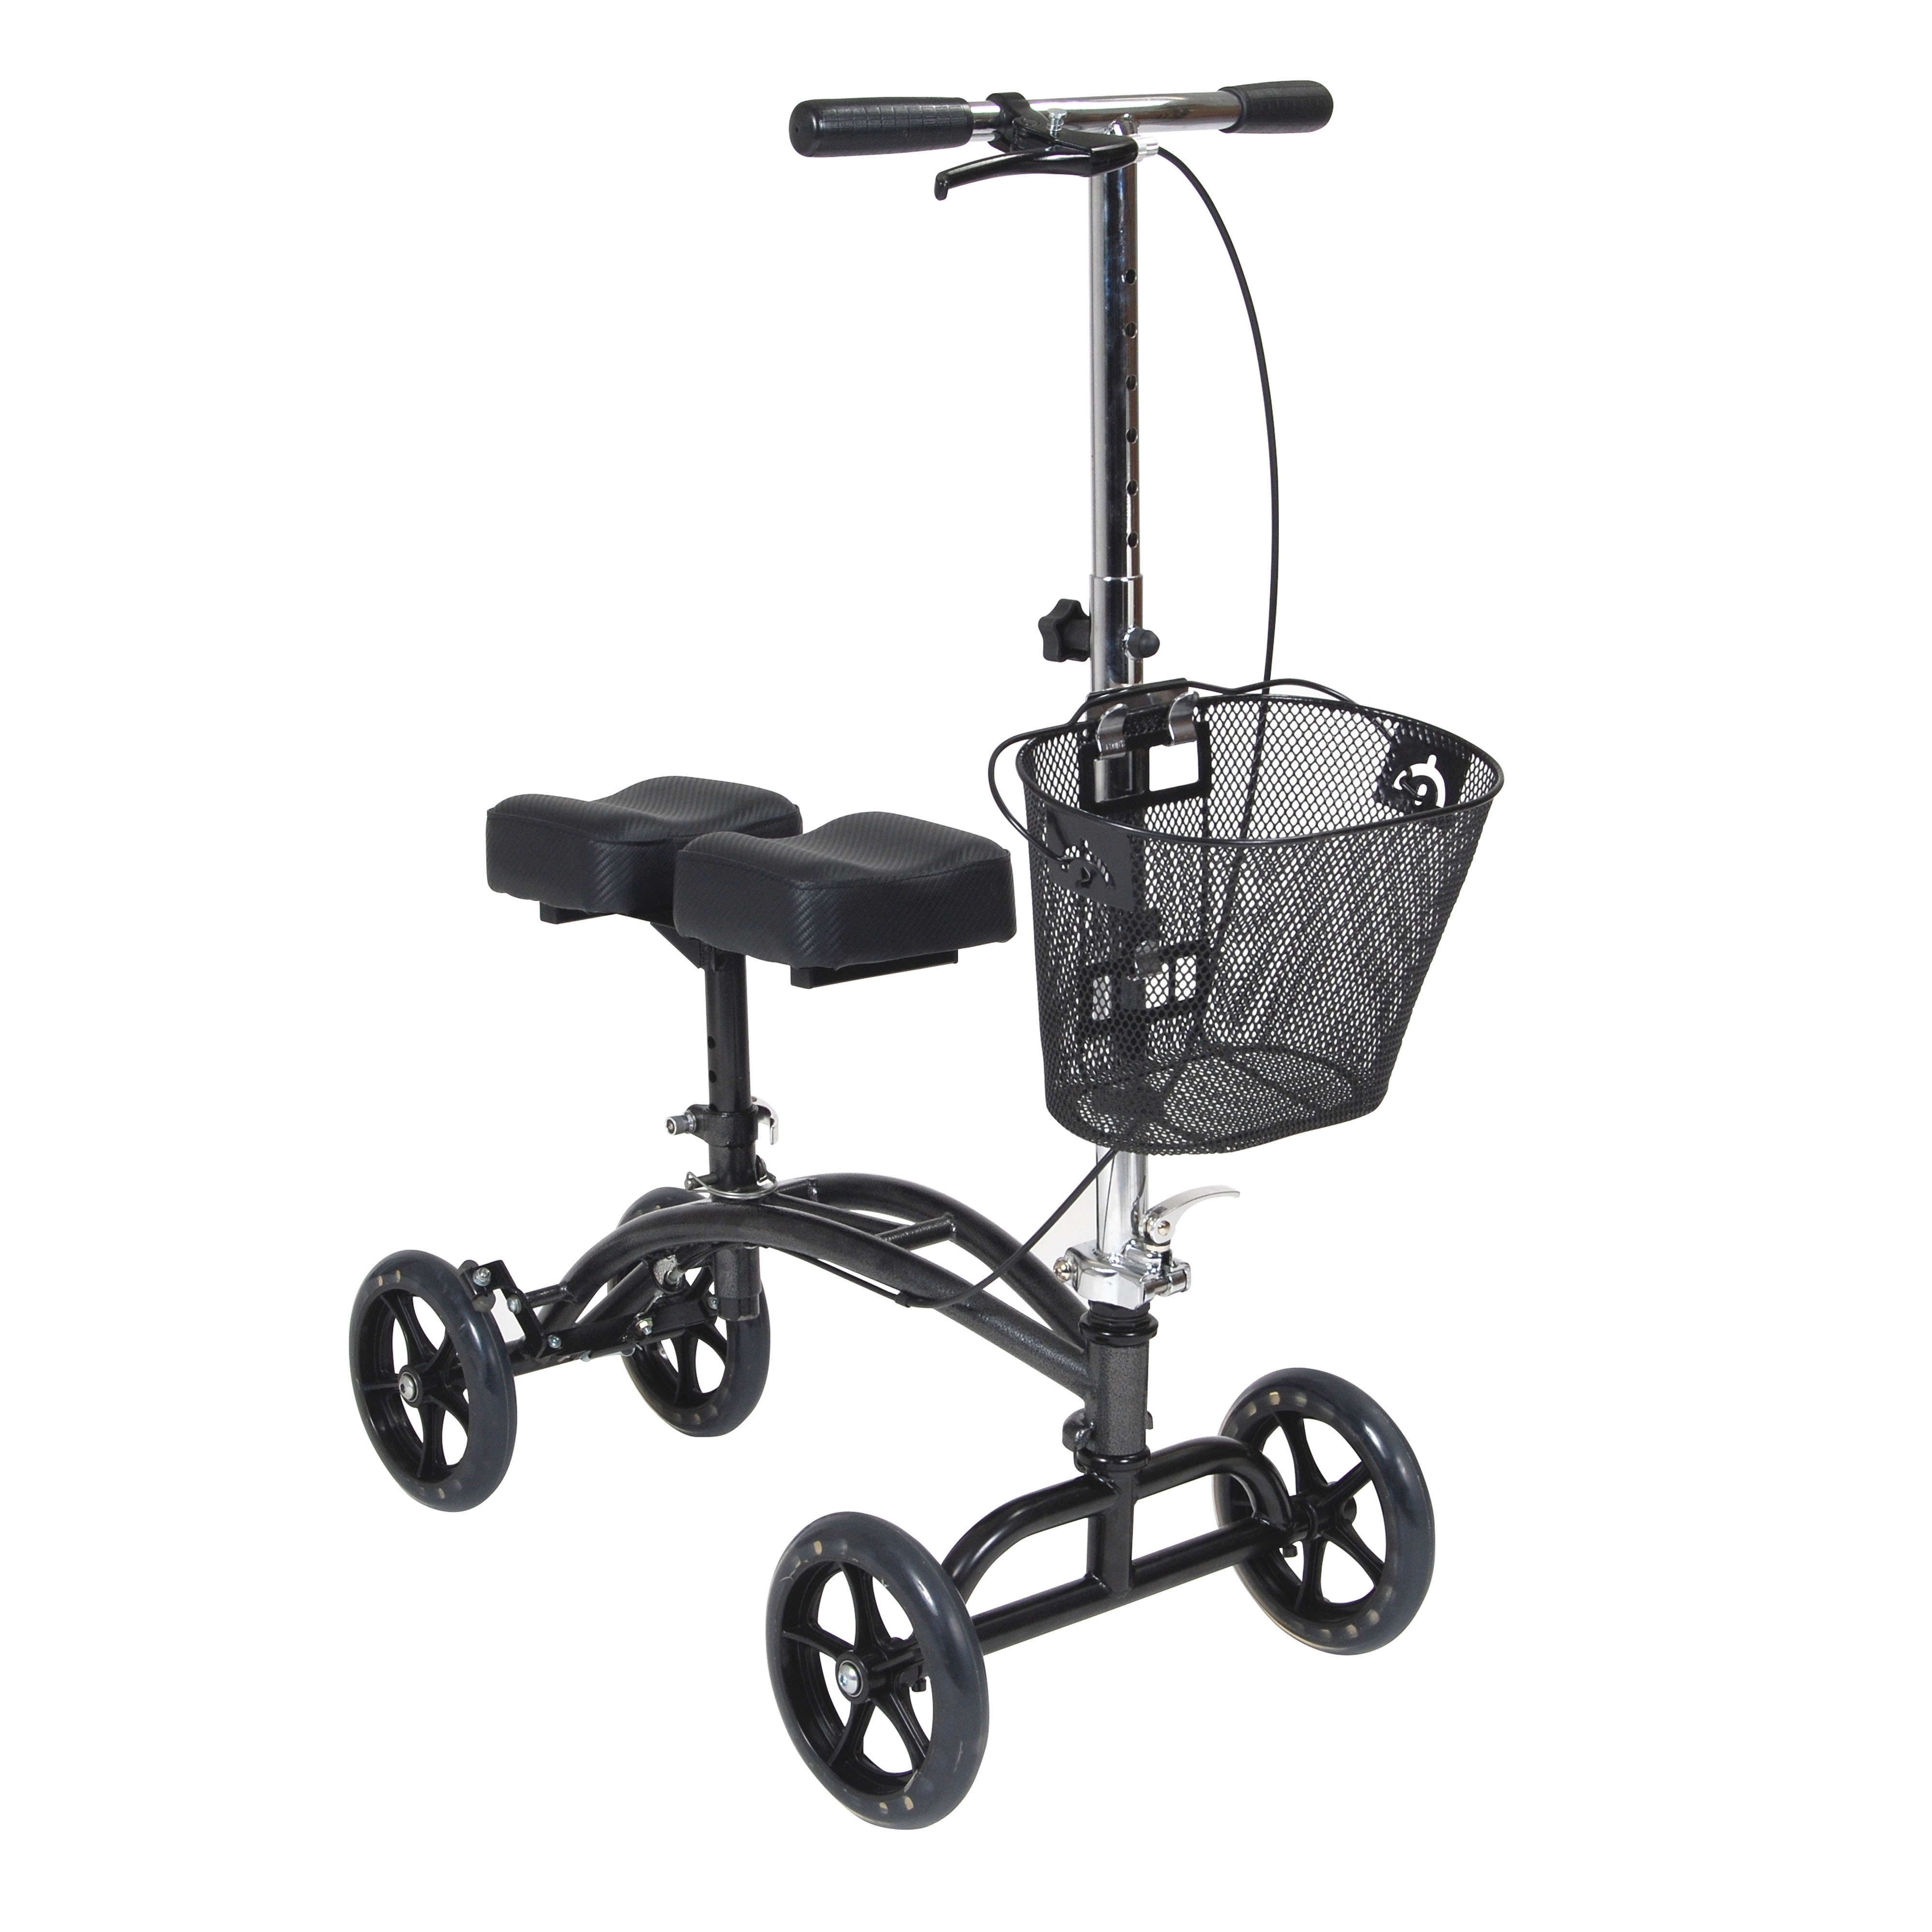 Drive Medical - Dual Pad Steerable Knee Walker with Basket, Alternative to Crutches